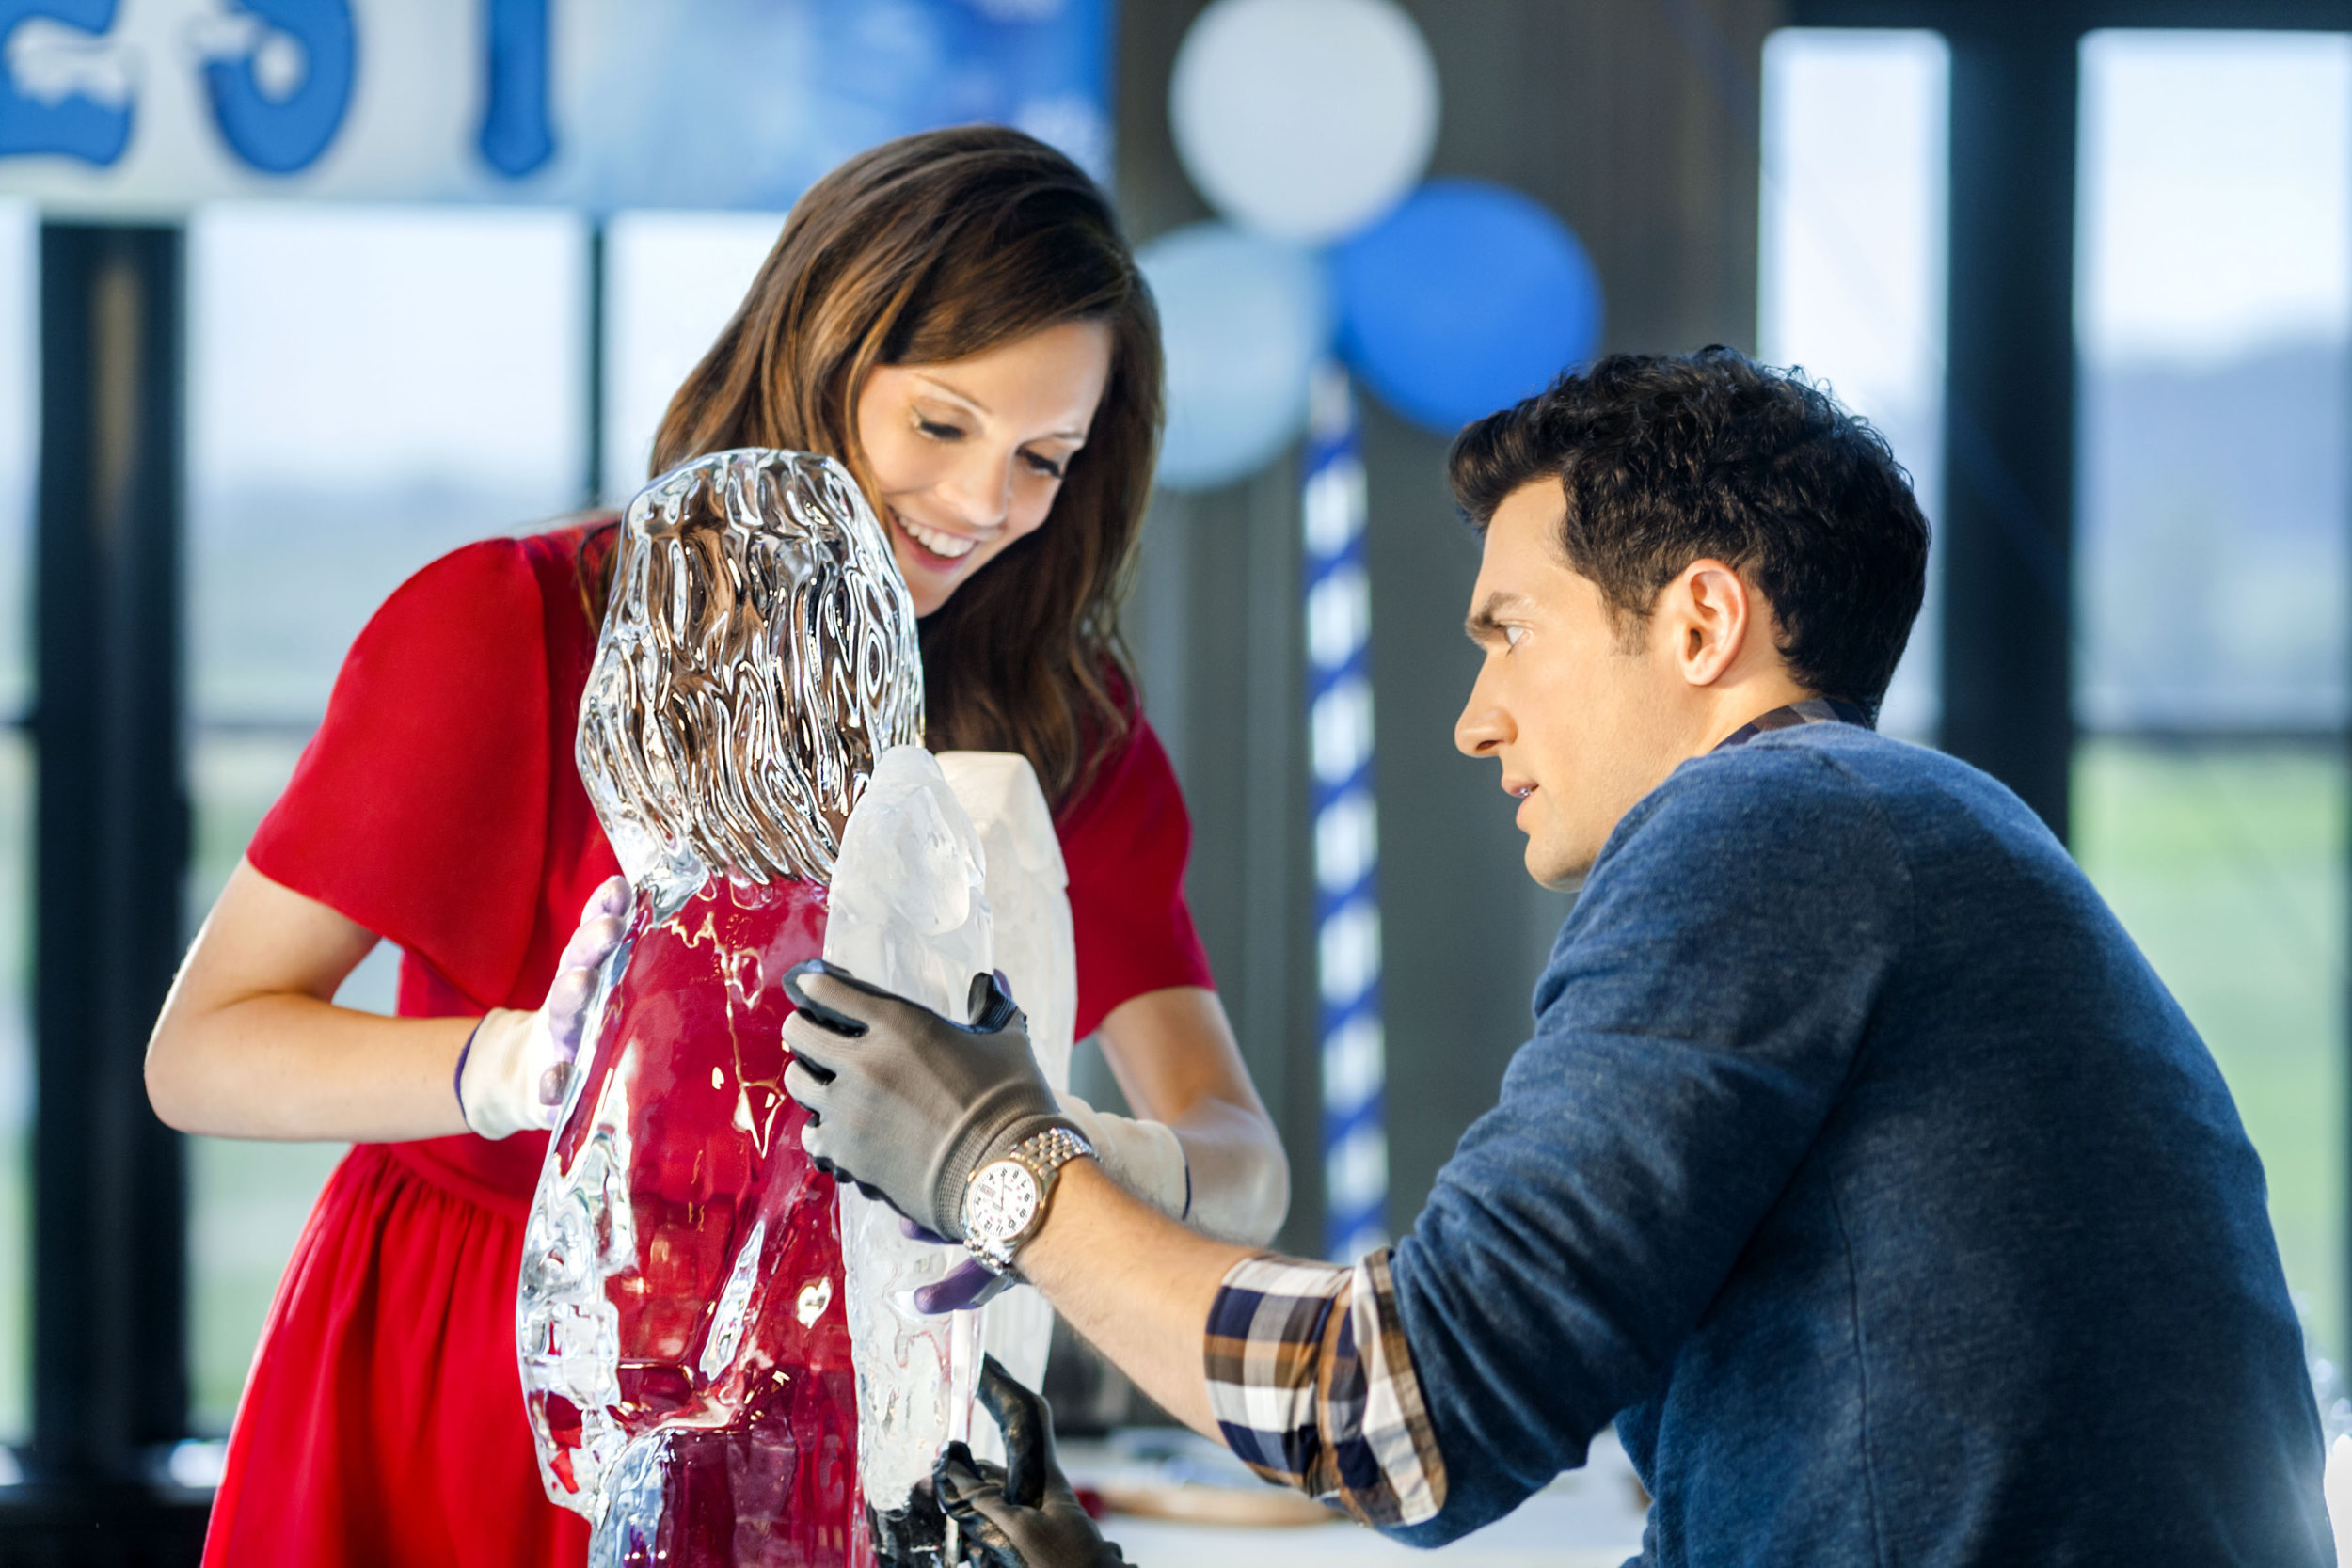 About Ice Sculpture Christmas Hallmark Channel